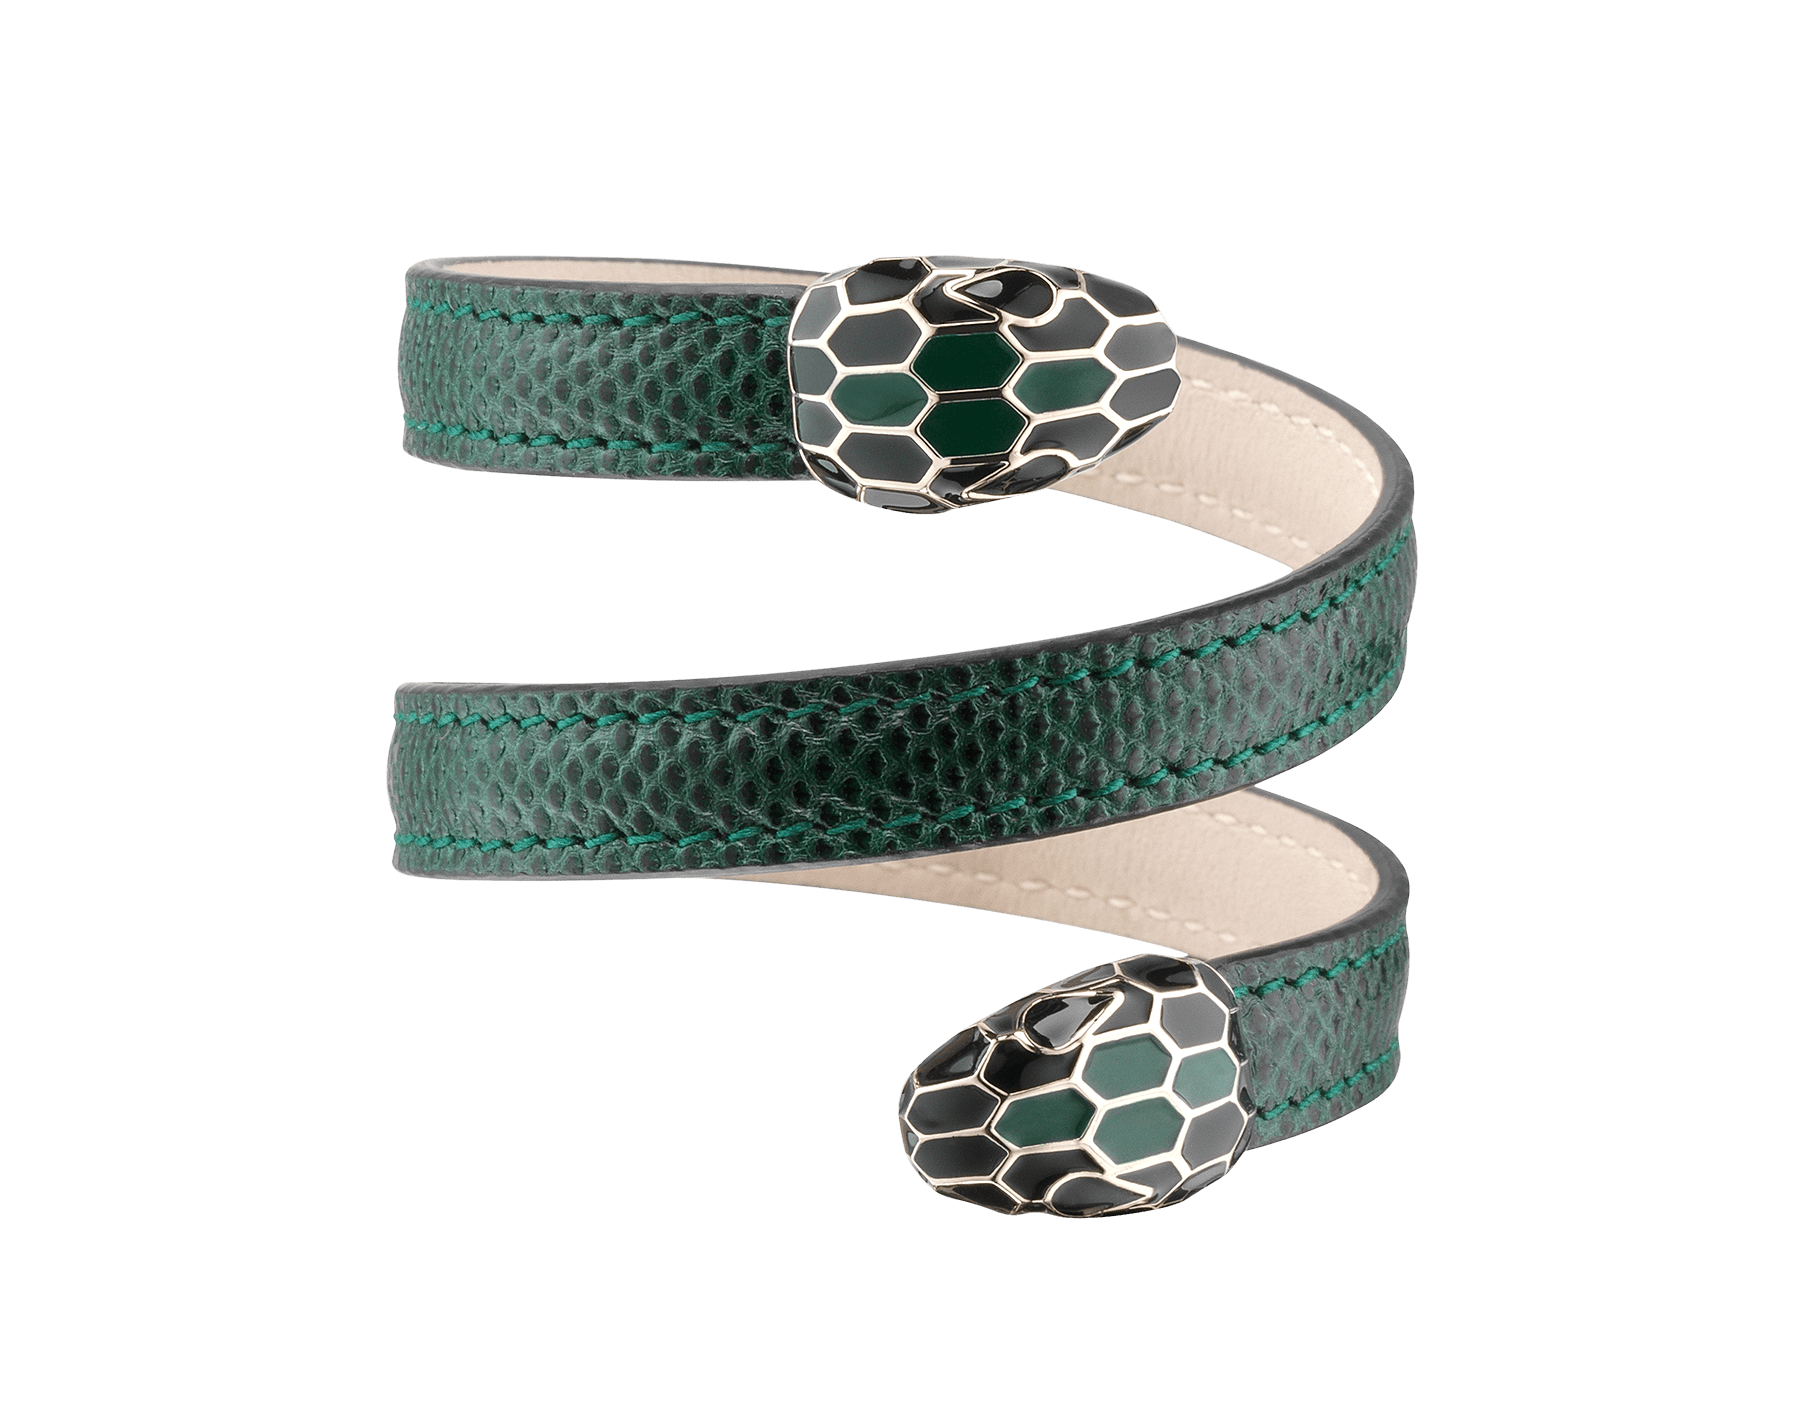 Multi-coiled rigid Cleopatra bracelet in forest emerald shiny karung skin with brass light gold plated hardware. Double tempting Serpenti head finished in black and forest emerald enamel. 284023 image 1